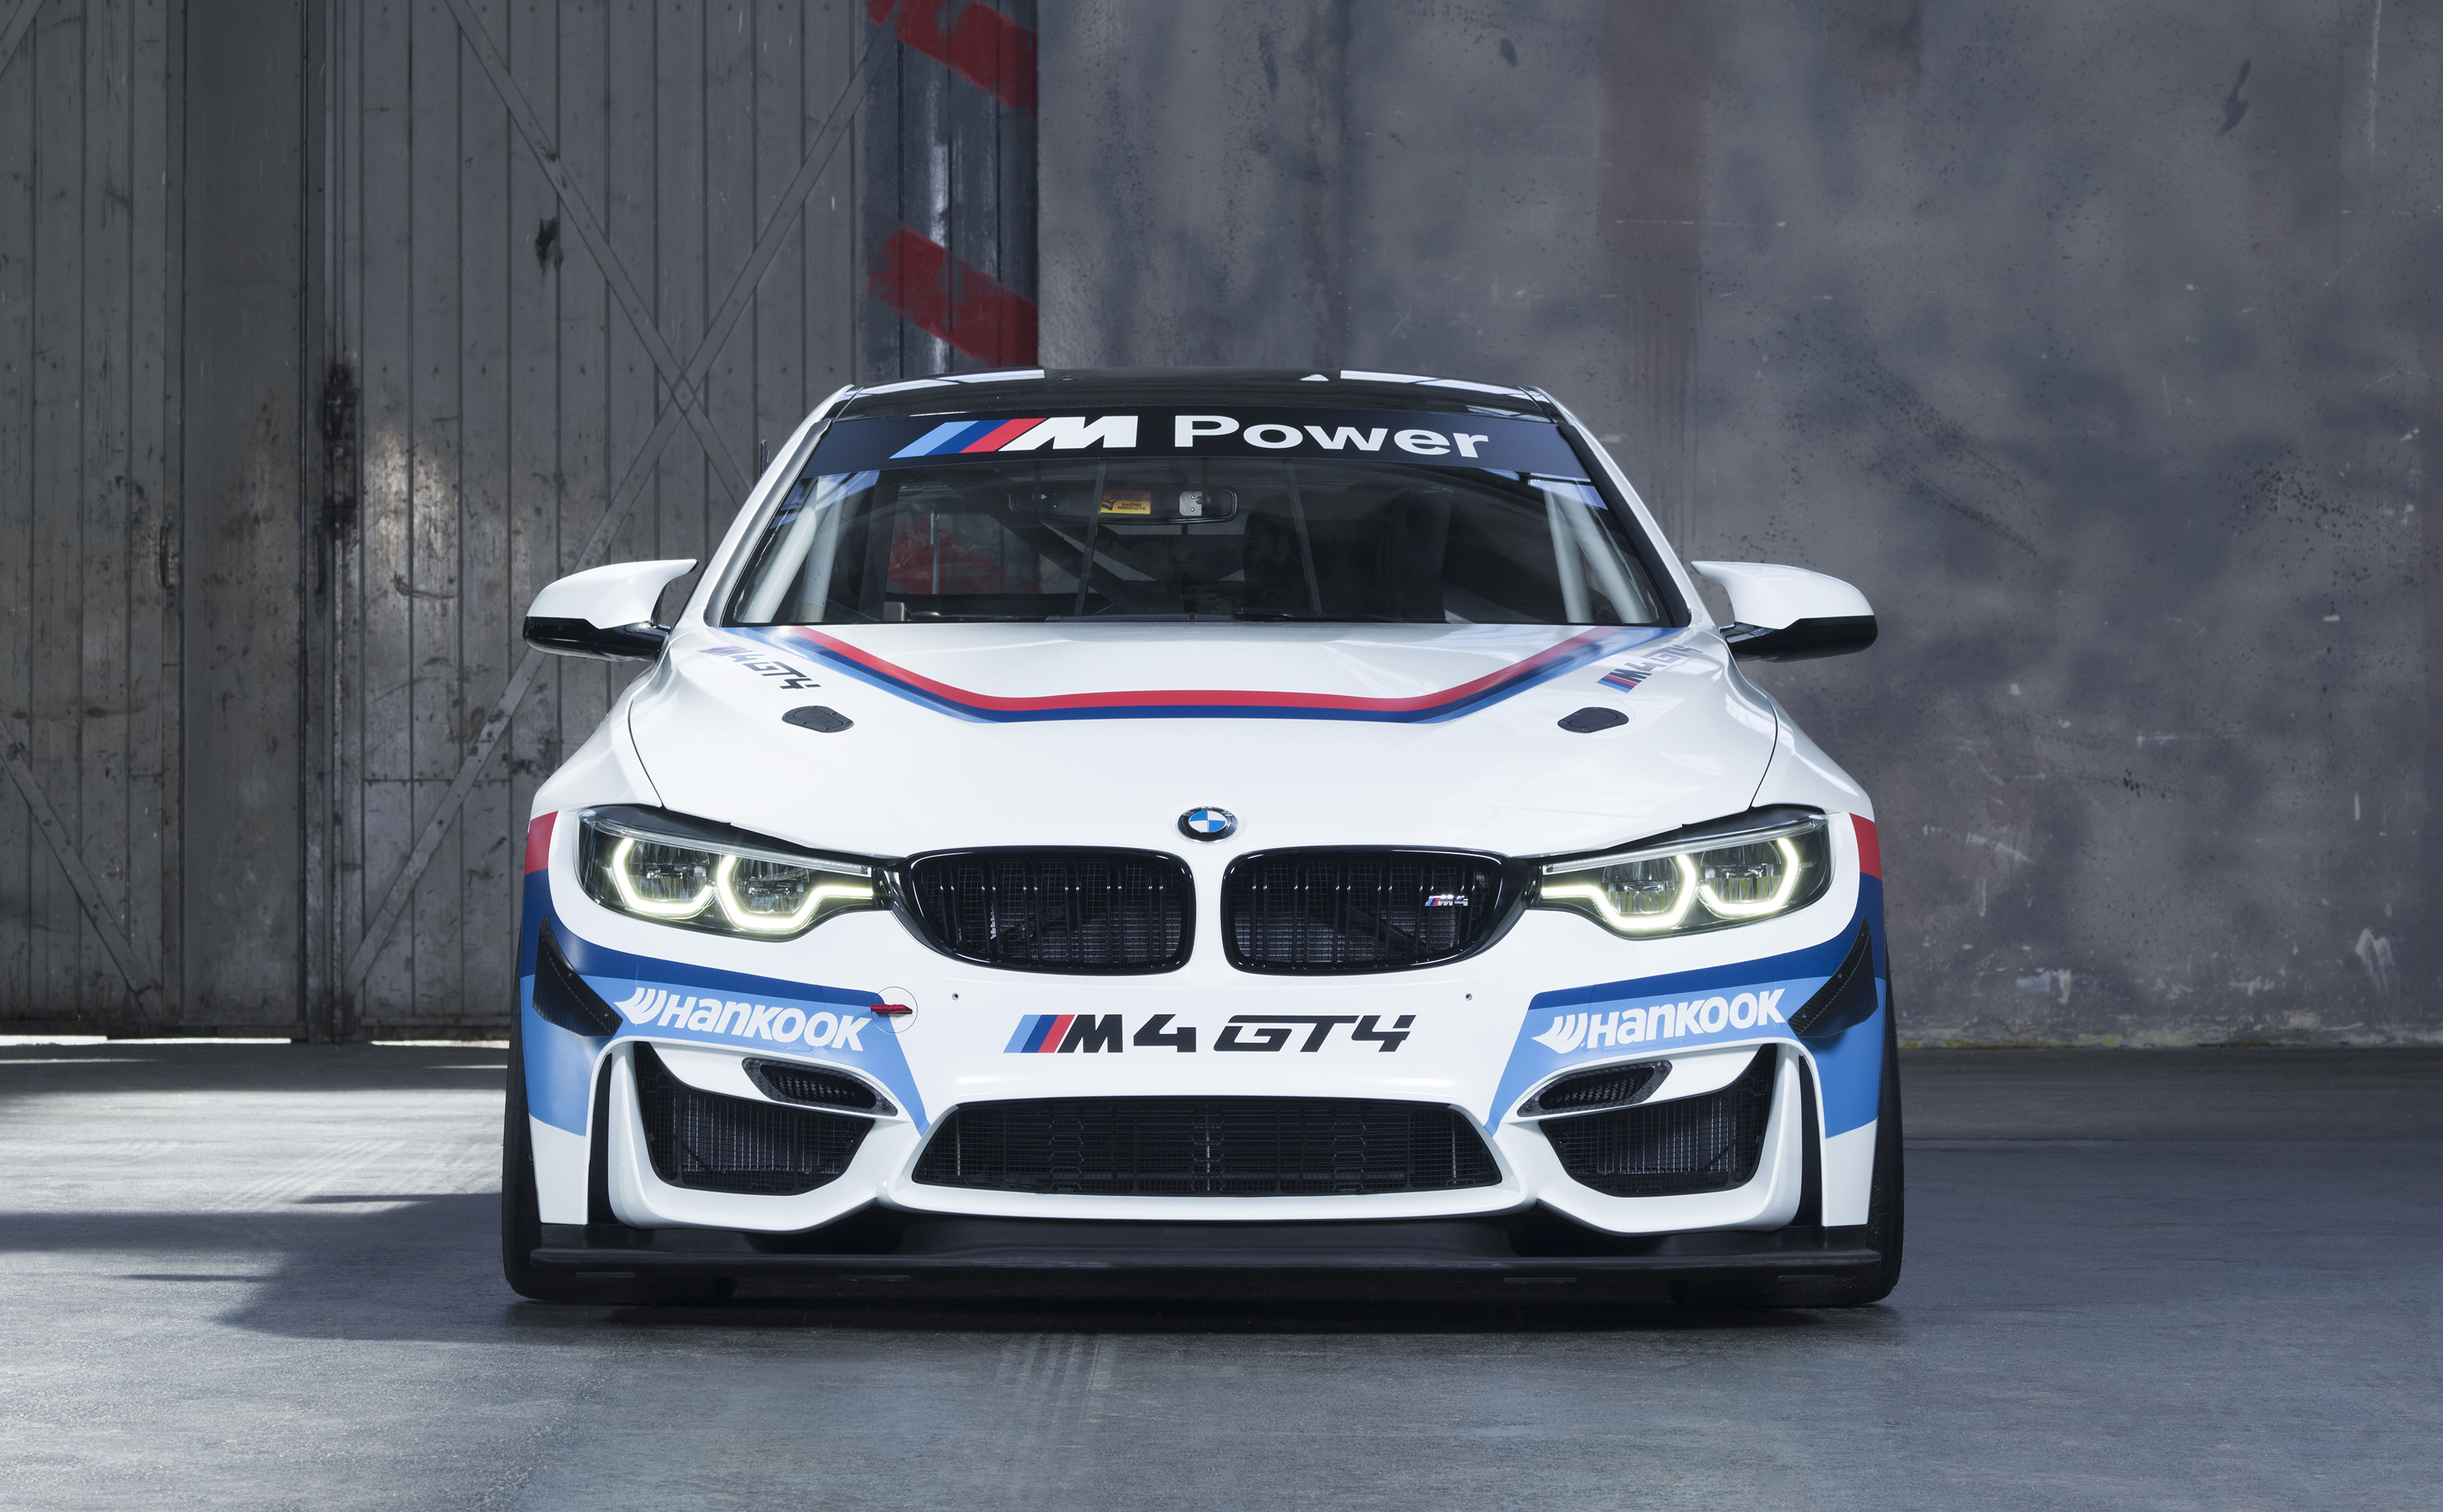 News M4 Gt4 The Bmw Endurance Racer You Can Buy